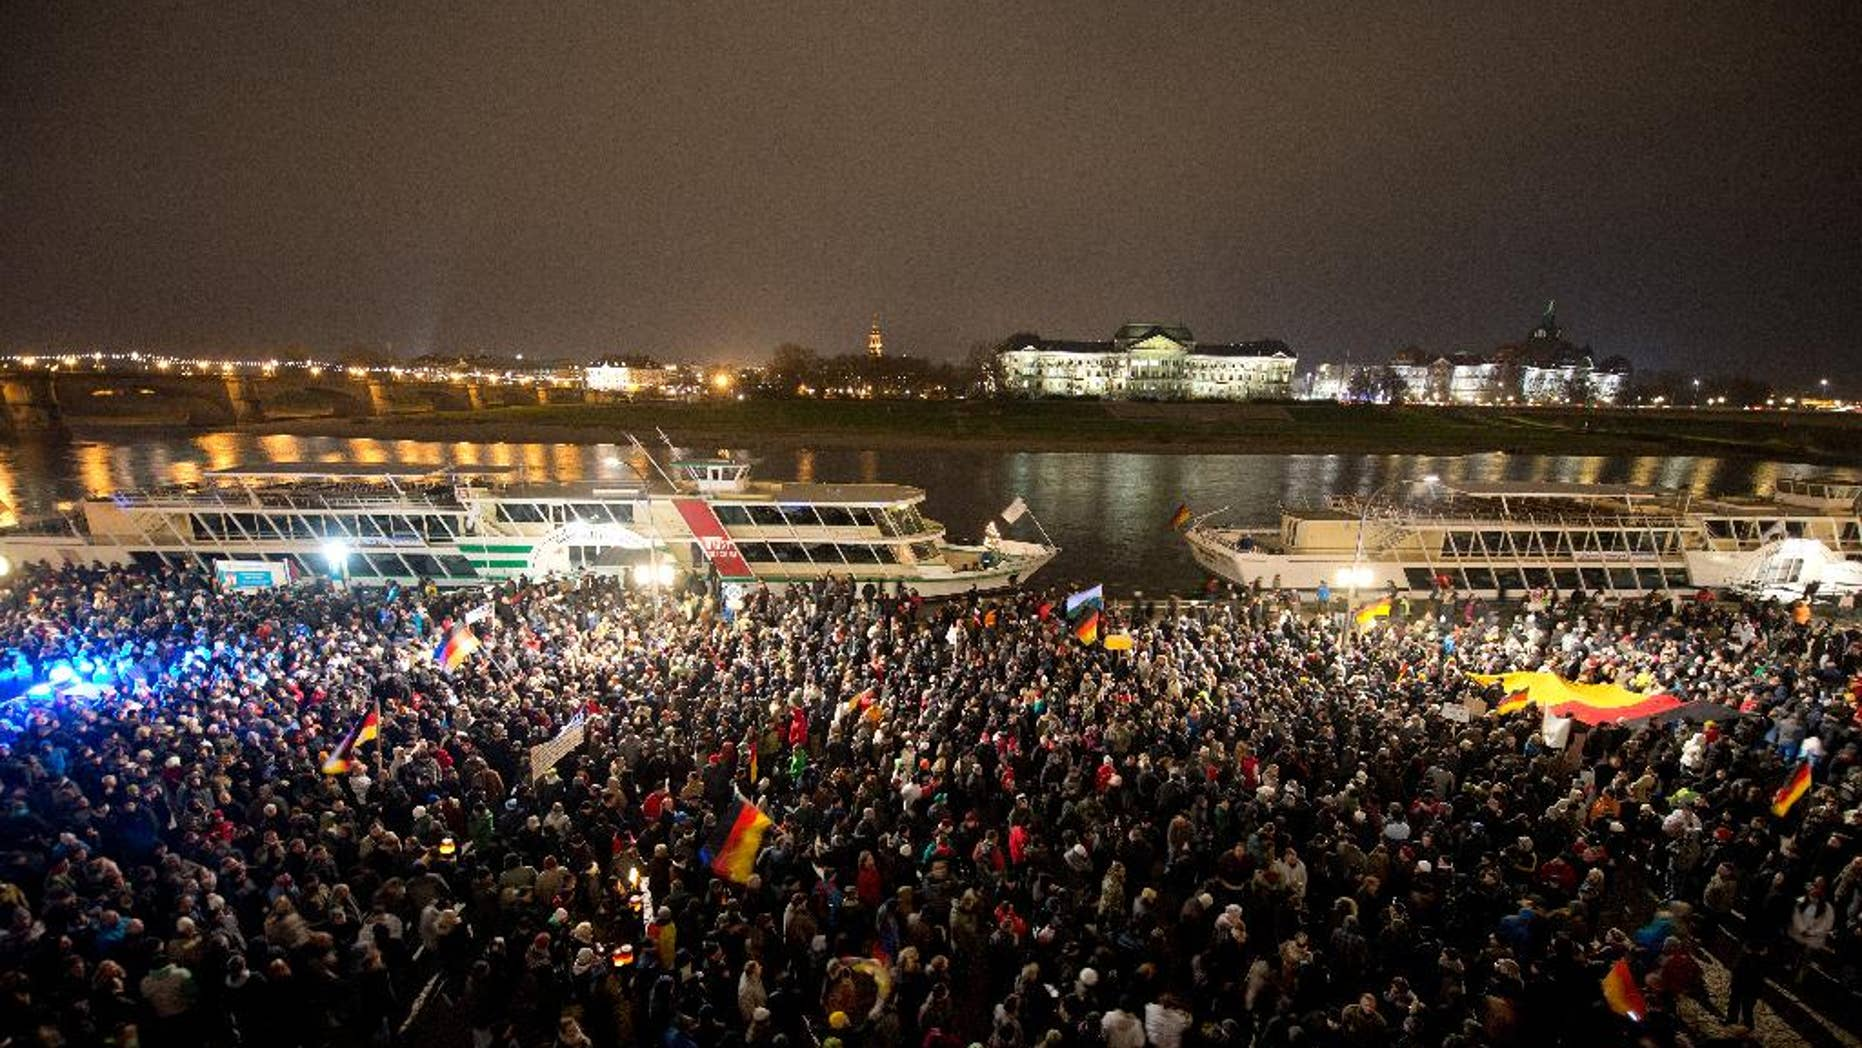 FILE - In this Dec. 1, 2014 file picture participants of a right-wing group's march  called  'Patriotic Europeans against the Islamization of the  West'  (PEGIDA,)  gather  in Dresden, Germany.  The eastern German city of Dresden is bracing itself for one of the biggest far-right marches the country has seen in years. City officials say Friday Dec. 5, 2014 organizers have told them 8,000 will take part in the protest Monday, billed as a march against Islamic extremism. The protest is organized by a group called PEGIDA, a German acronym for 'Patriotic Europeans against the Islamization of the West.'  Over the past two months it has organized seven protests in Dresden, growing from 200 at the first march to 7,500 people last Monday. (AP Photo/dpa,Arno Burgi,File)